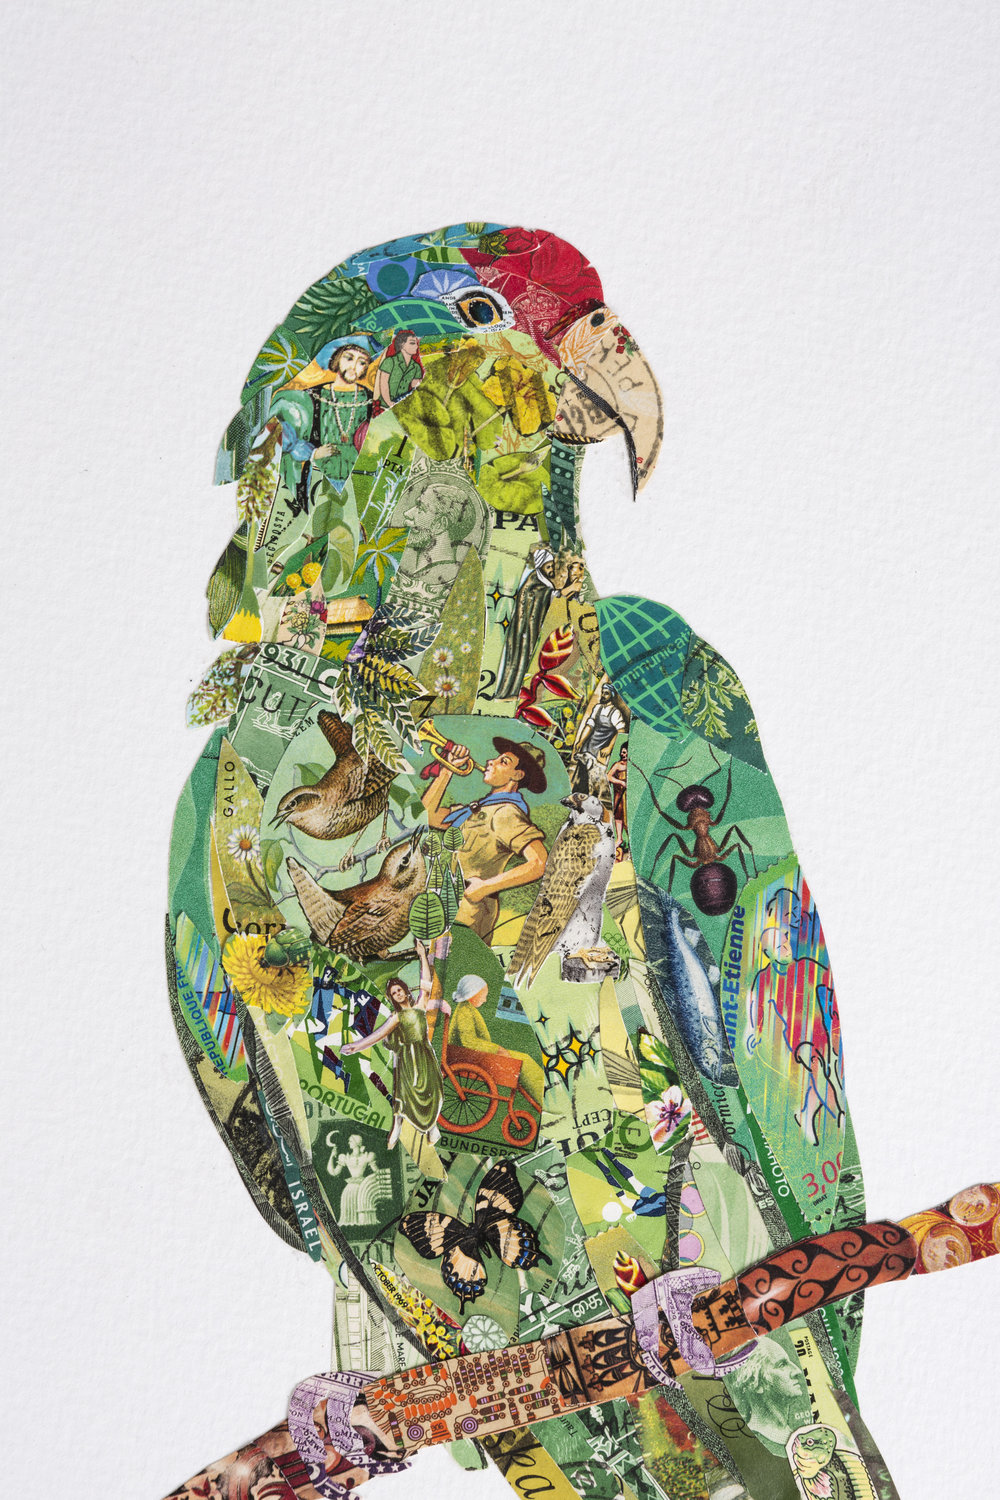 Red Crowned Parrot, (detail)